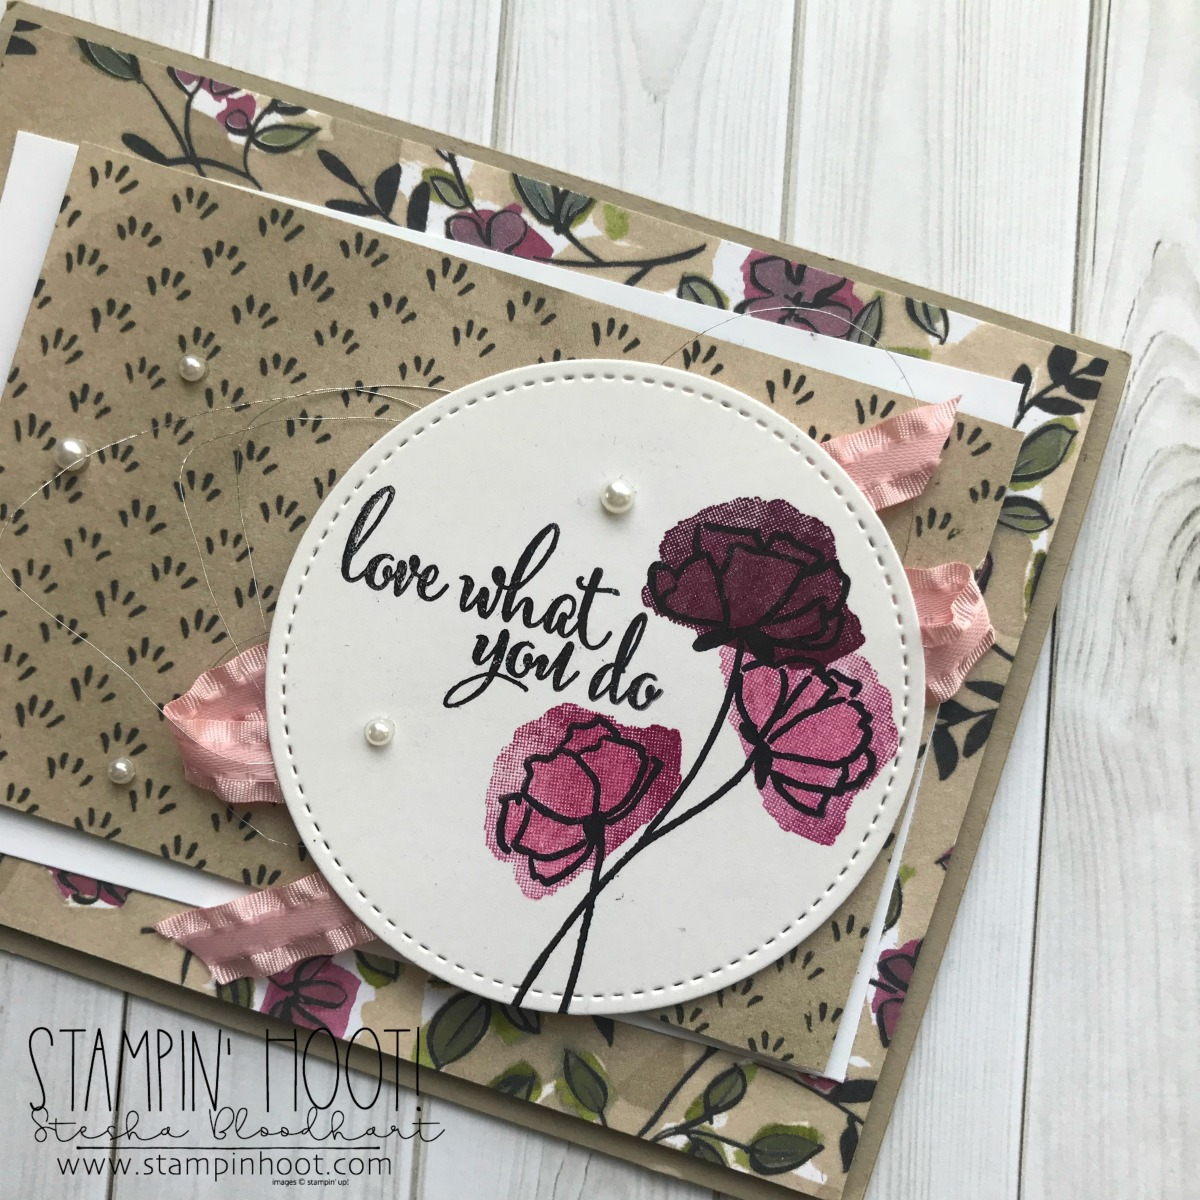 Share What You Love Suite Early Release Available May 1st - 31st 2018. Card created by Stesha Bloodhart, Stampin' Hoot! #steshabloodhart #stampinhoot #tgifc157